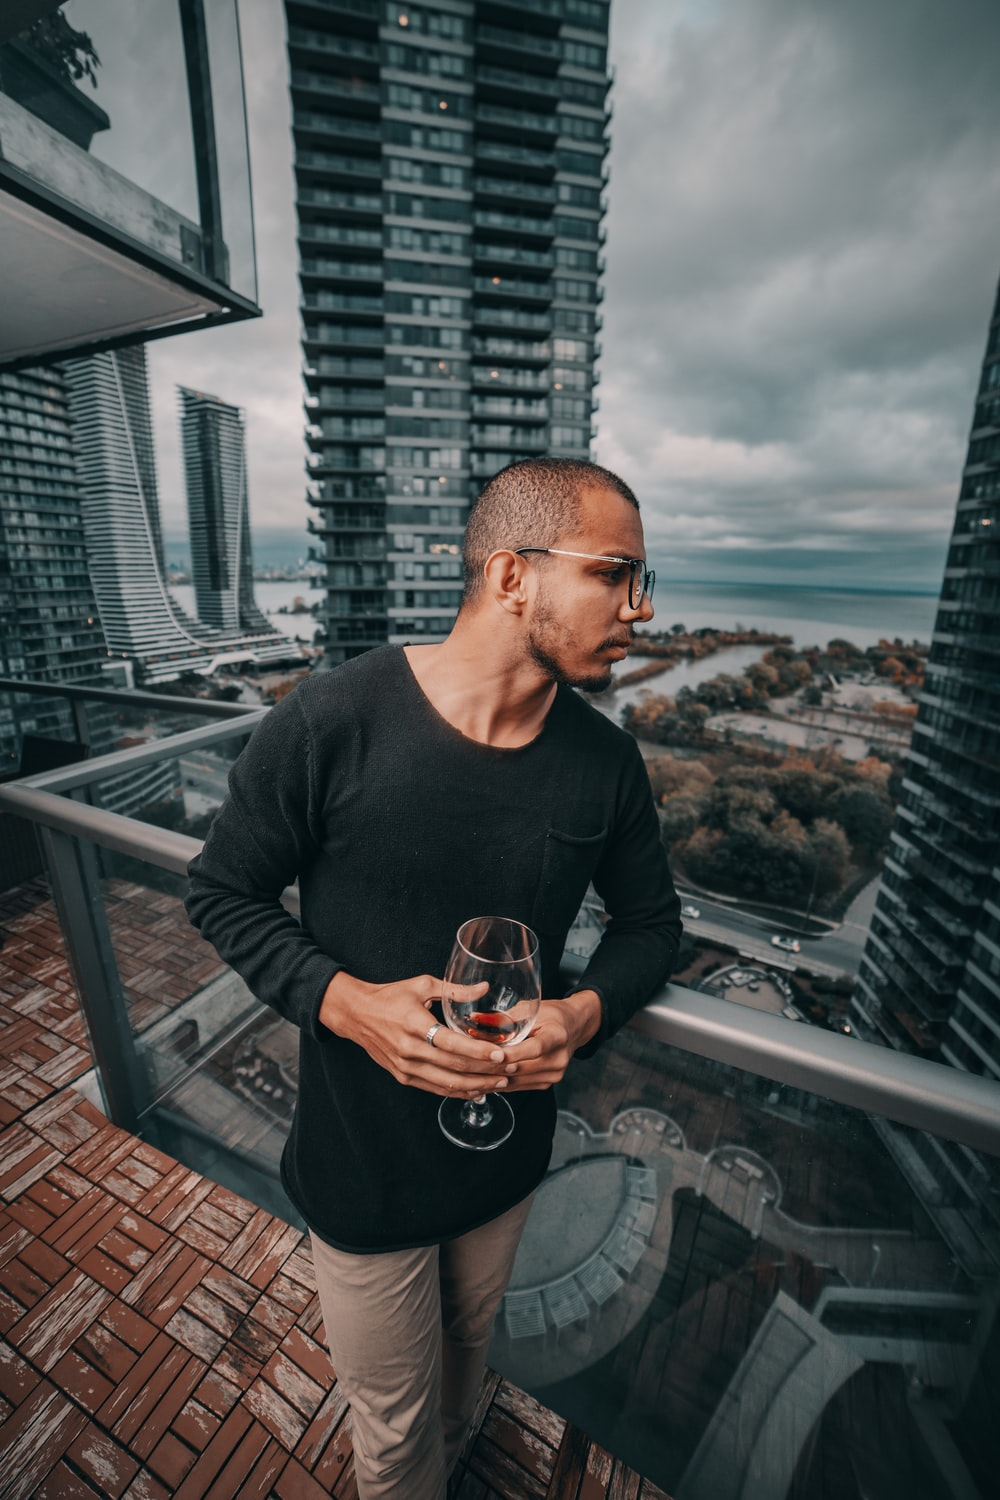 man standing and holding near empty wineglass leaning beside gray framed clear glass building balcony railing at the city during day